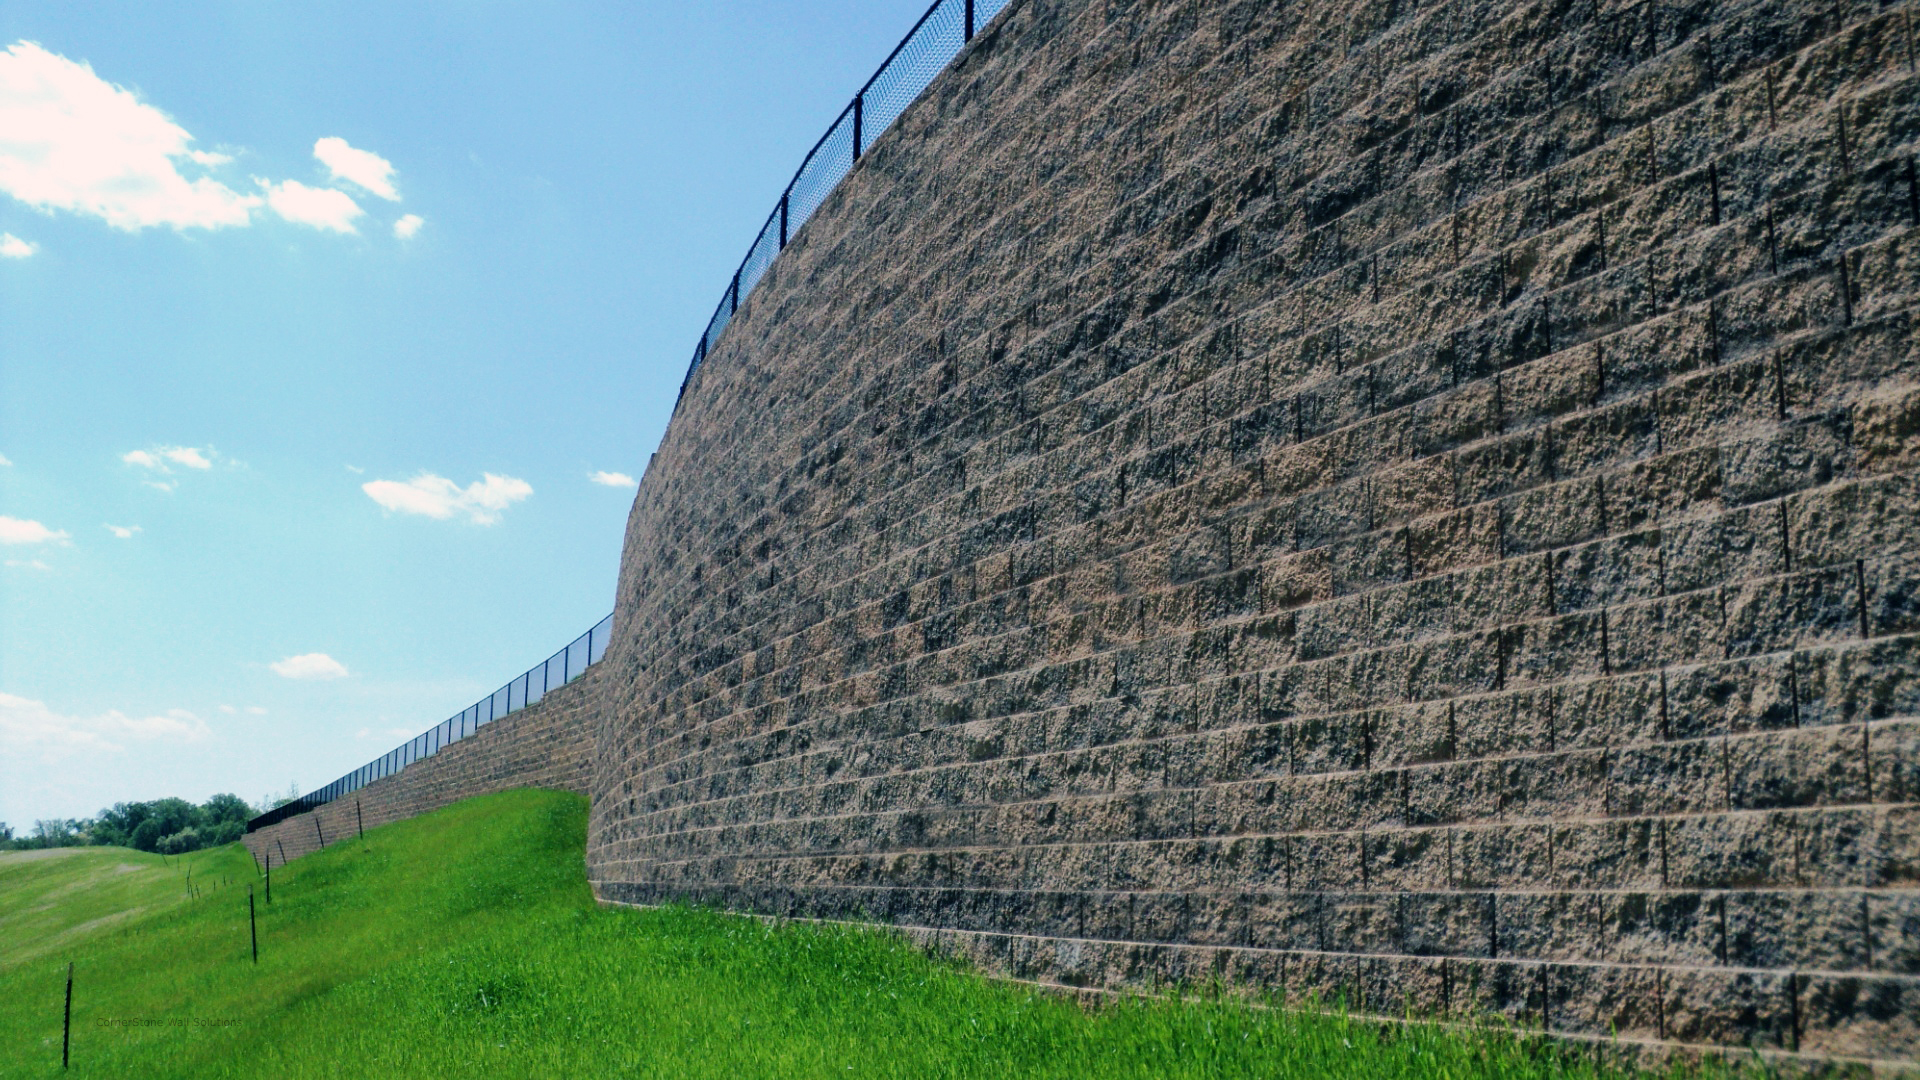 Tall Retaining Wall in Hagerstown, Maryland